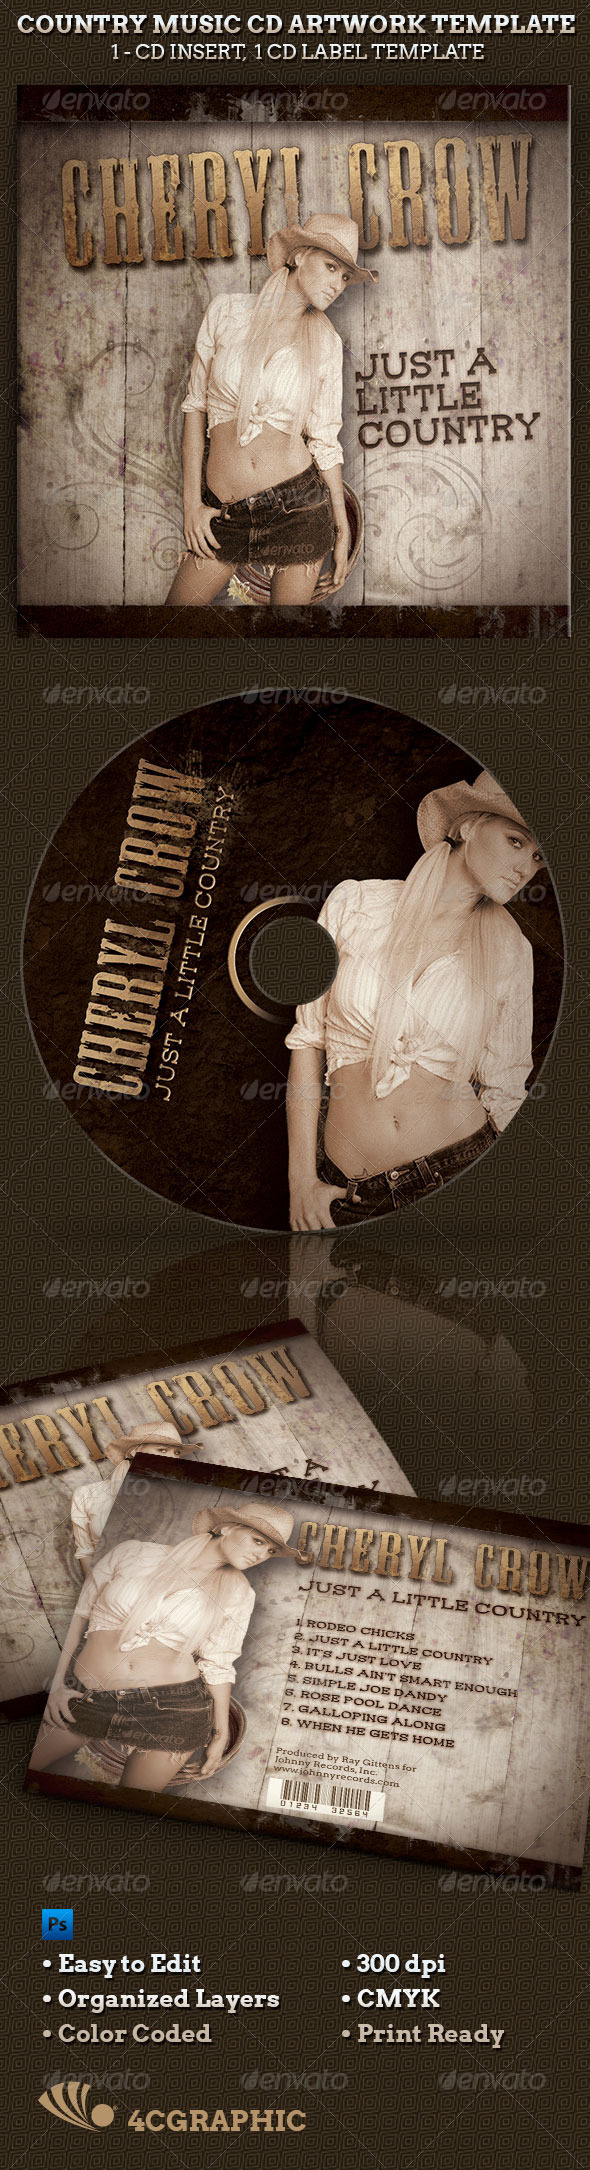 GraphicRiver Country Western Music CD Artwork Template 6914404